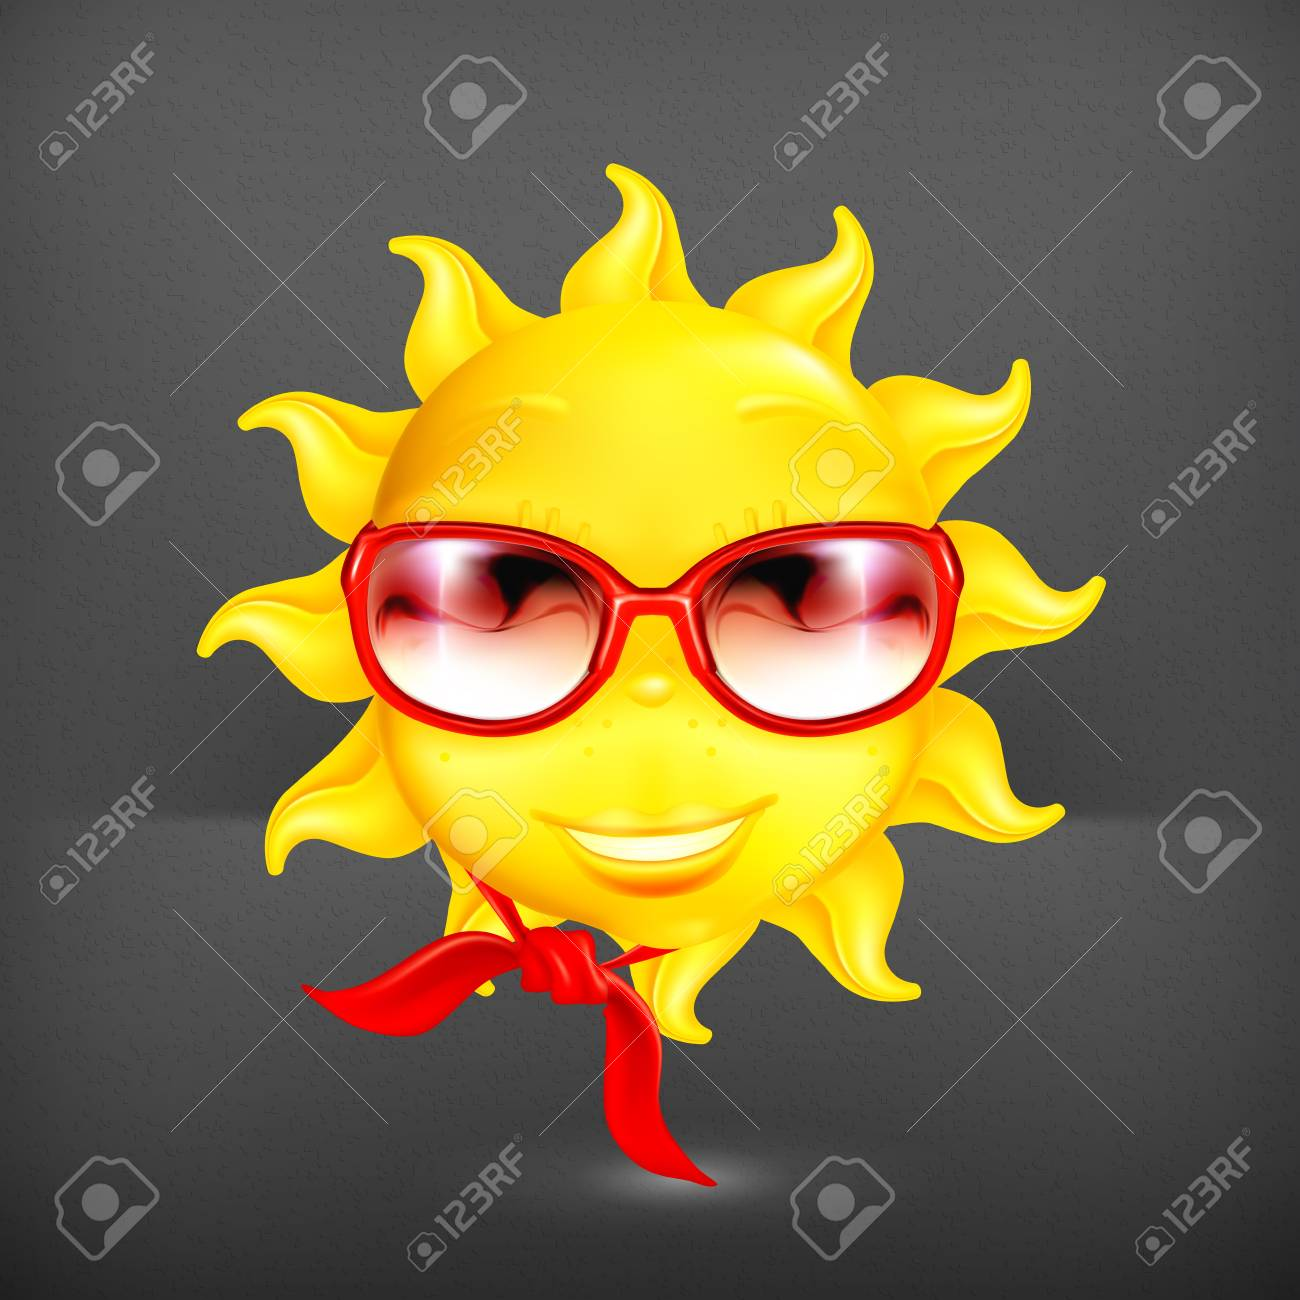 Fun sun Stock Vector - 19474764